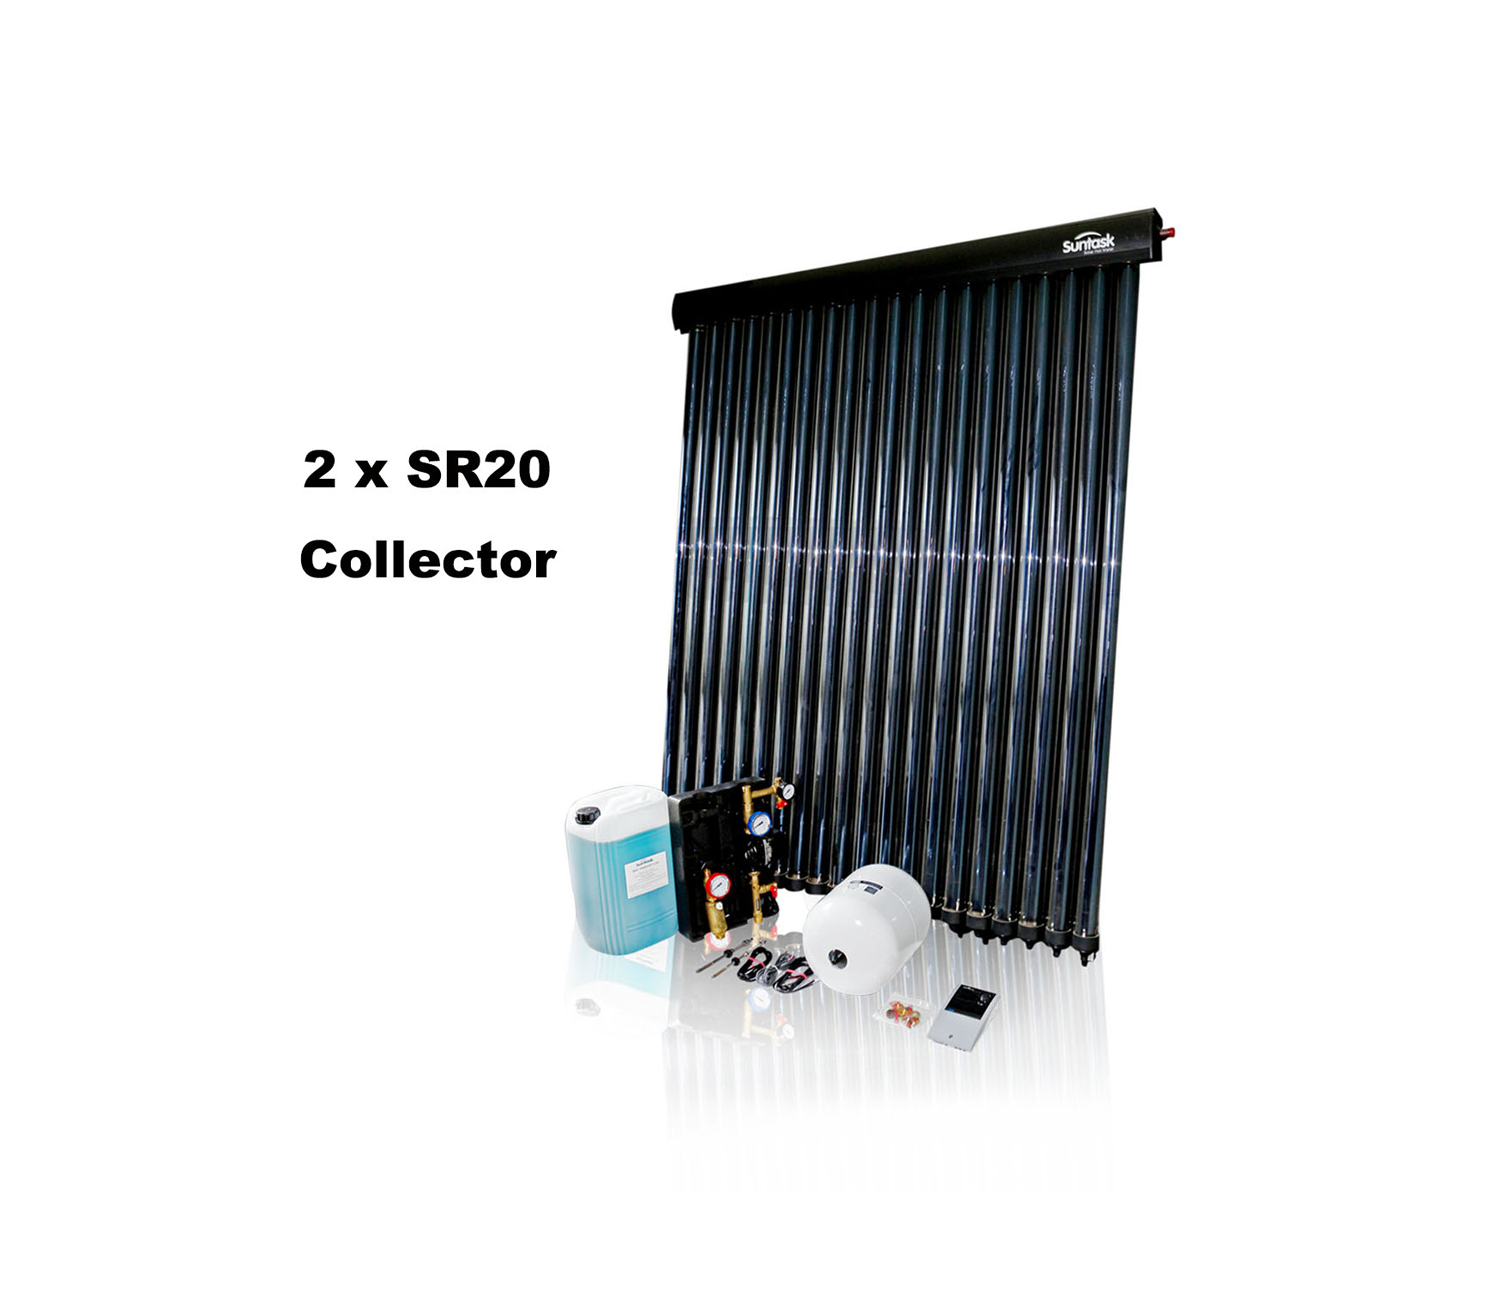 Suntask_full_Solar_Thermal_Kits_excluding_Cylinders_40_Tube_System_(2 x SR20_Collector).jpg